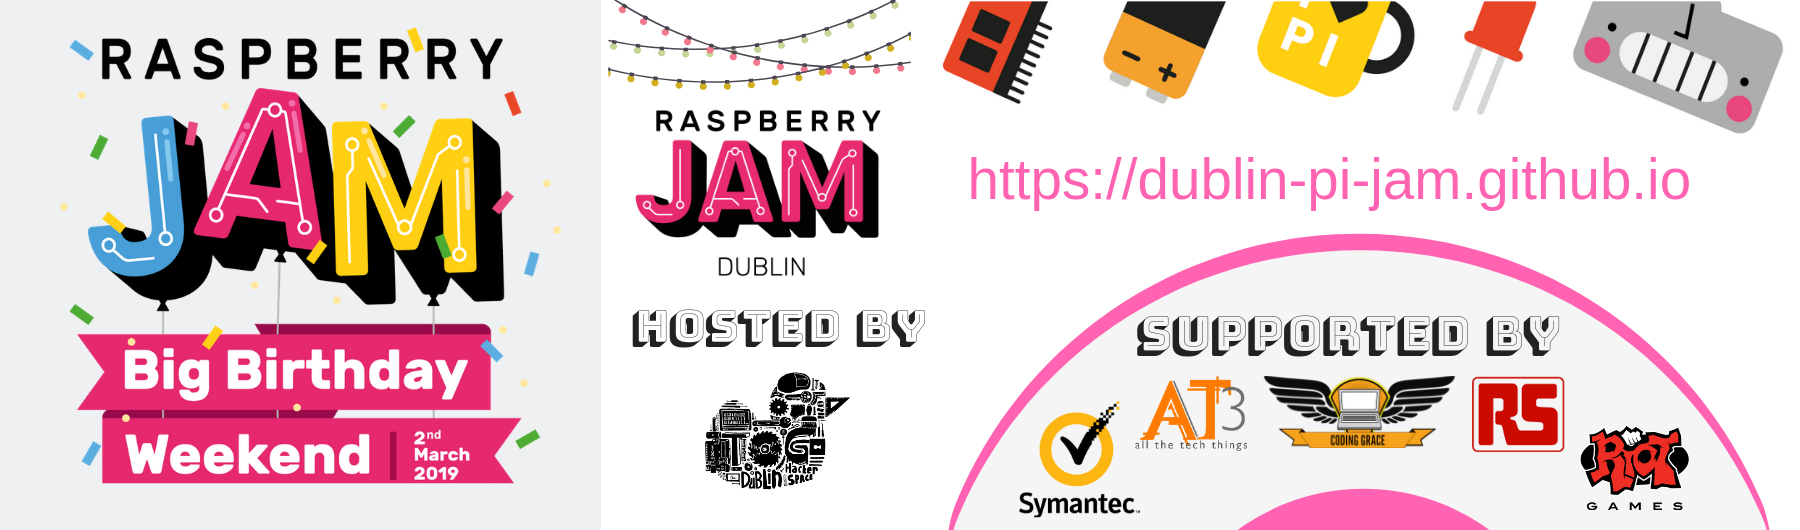 Raspberry Jam Big Birthday Event 2019